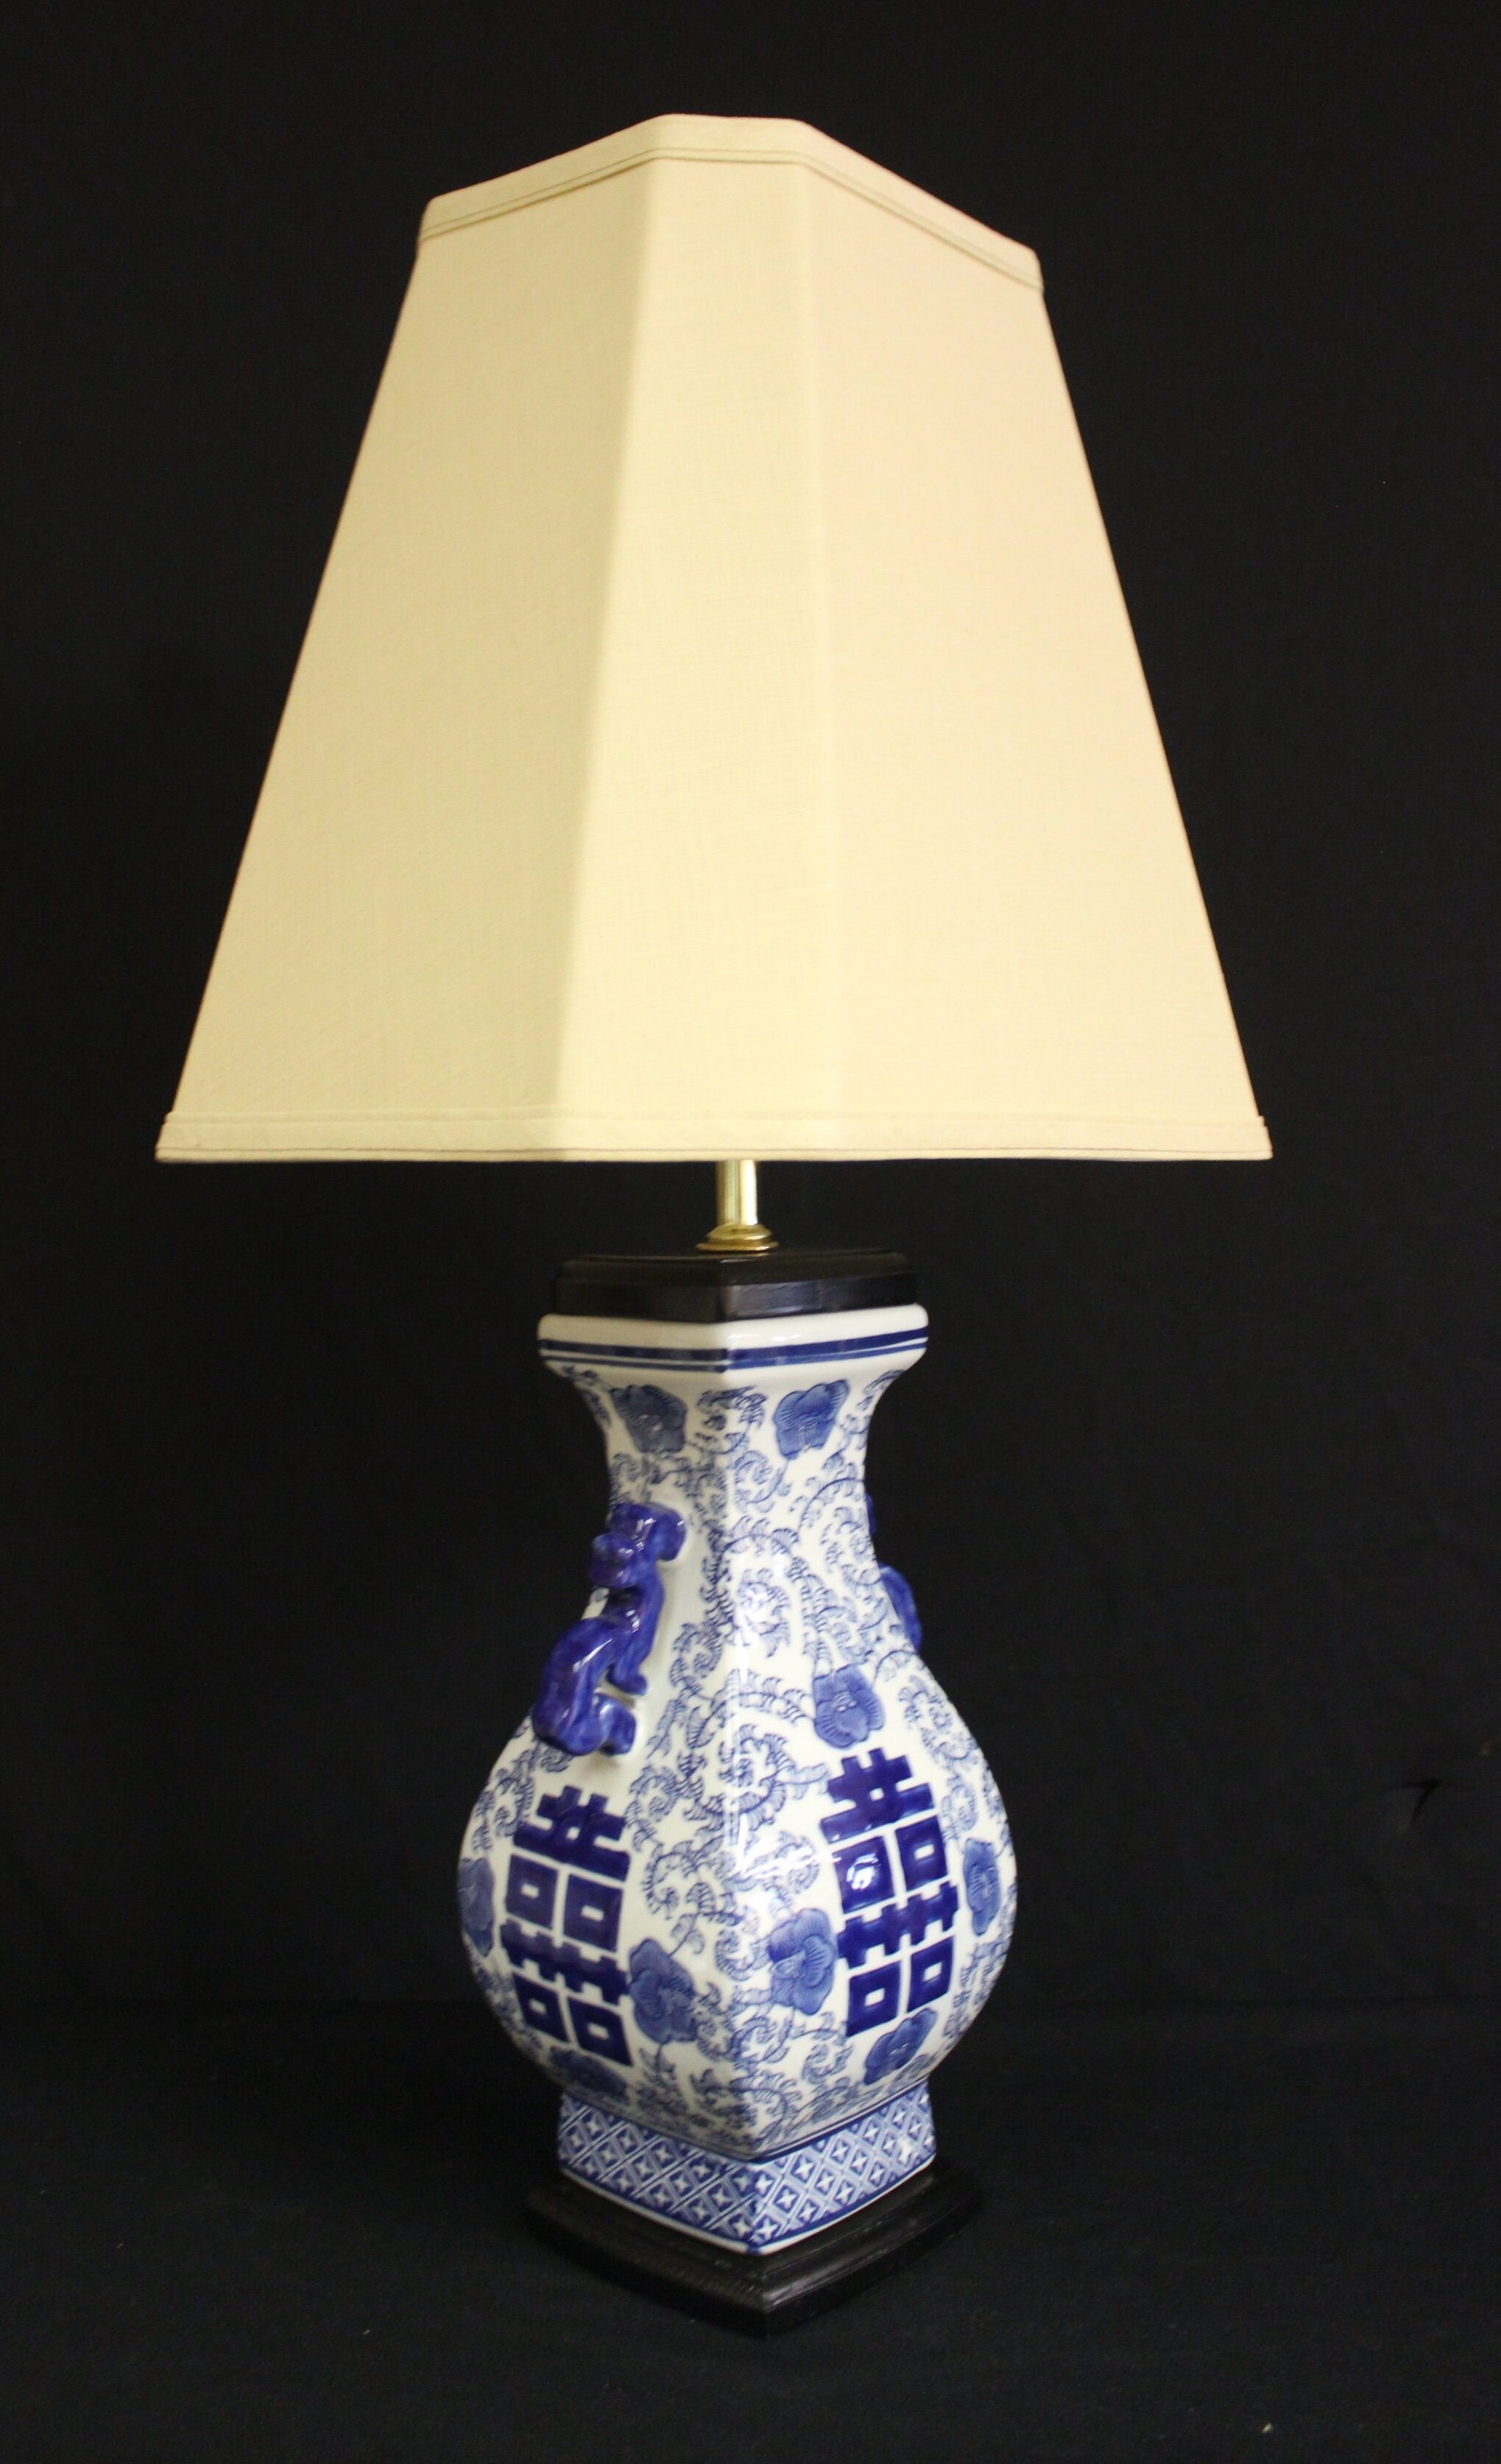 Shown with #600 Beige Linen Lampshade Option